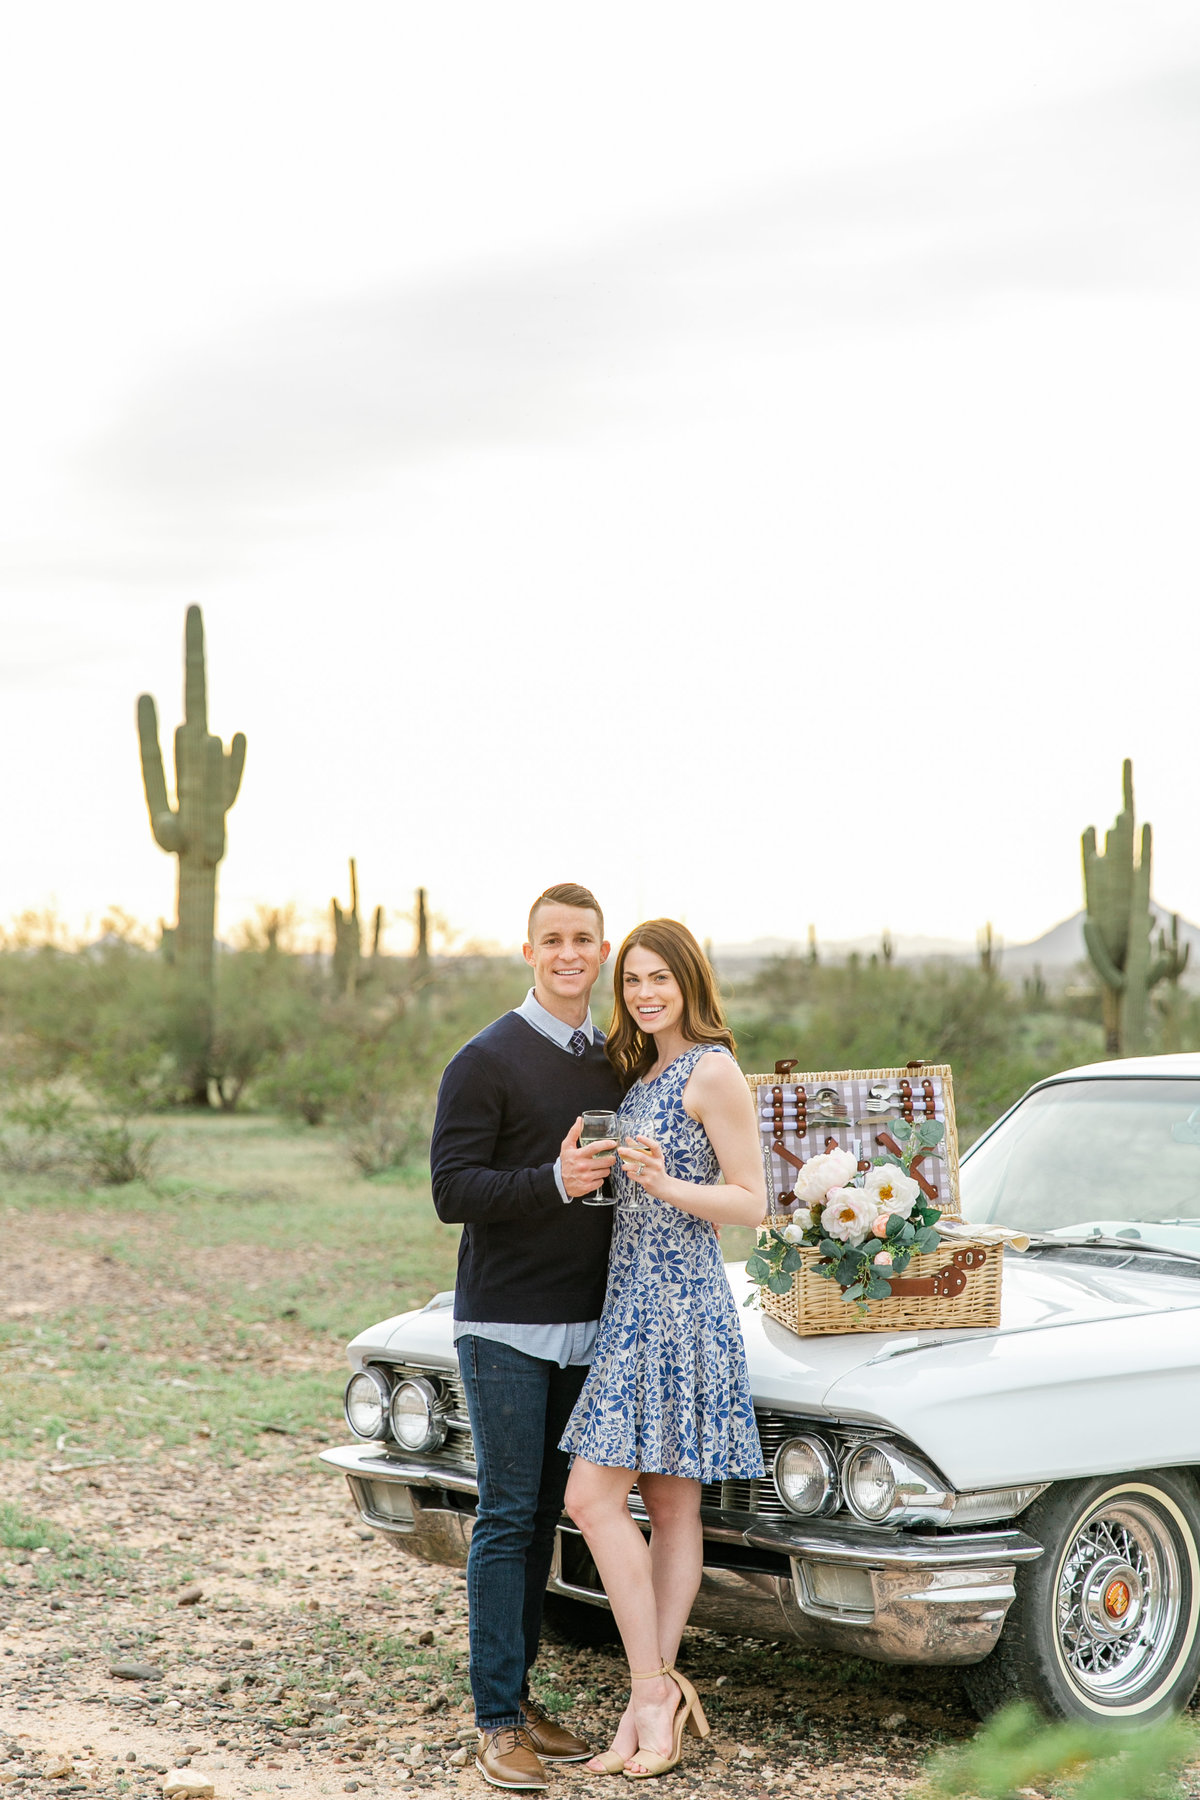 Karlie Colleen Photography - Arizona Engagement Photos- Chacey & Stefan-237